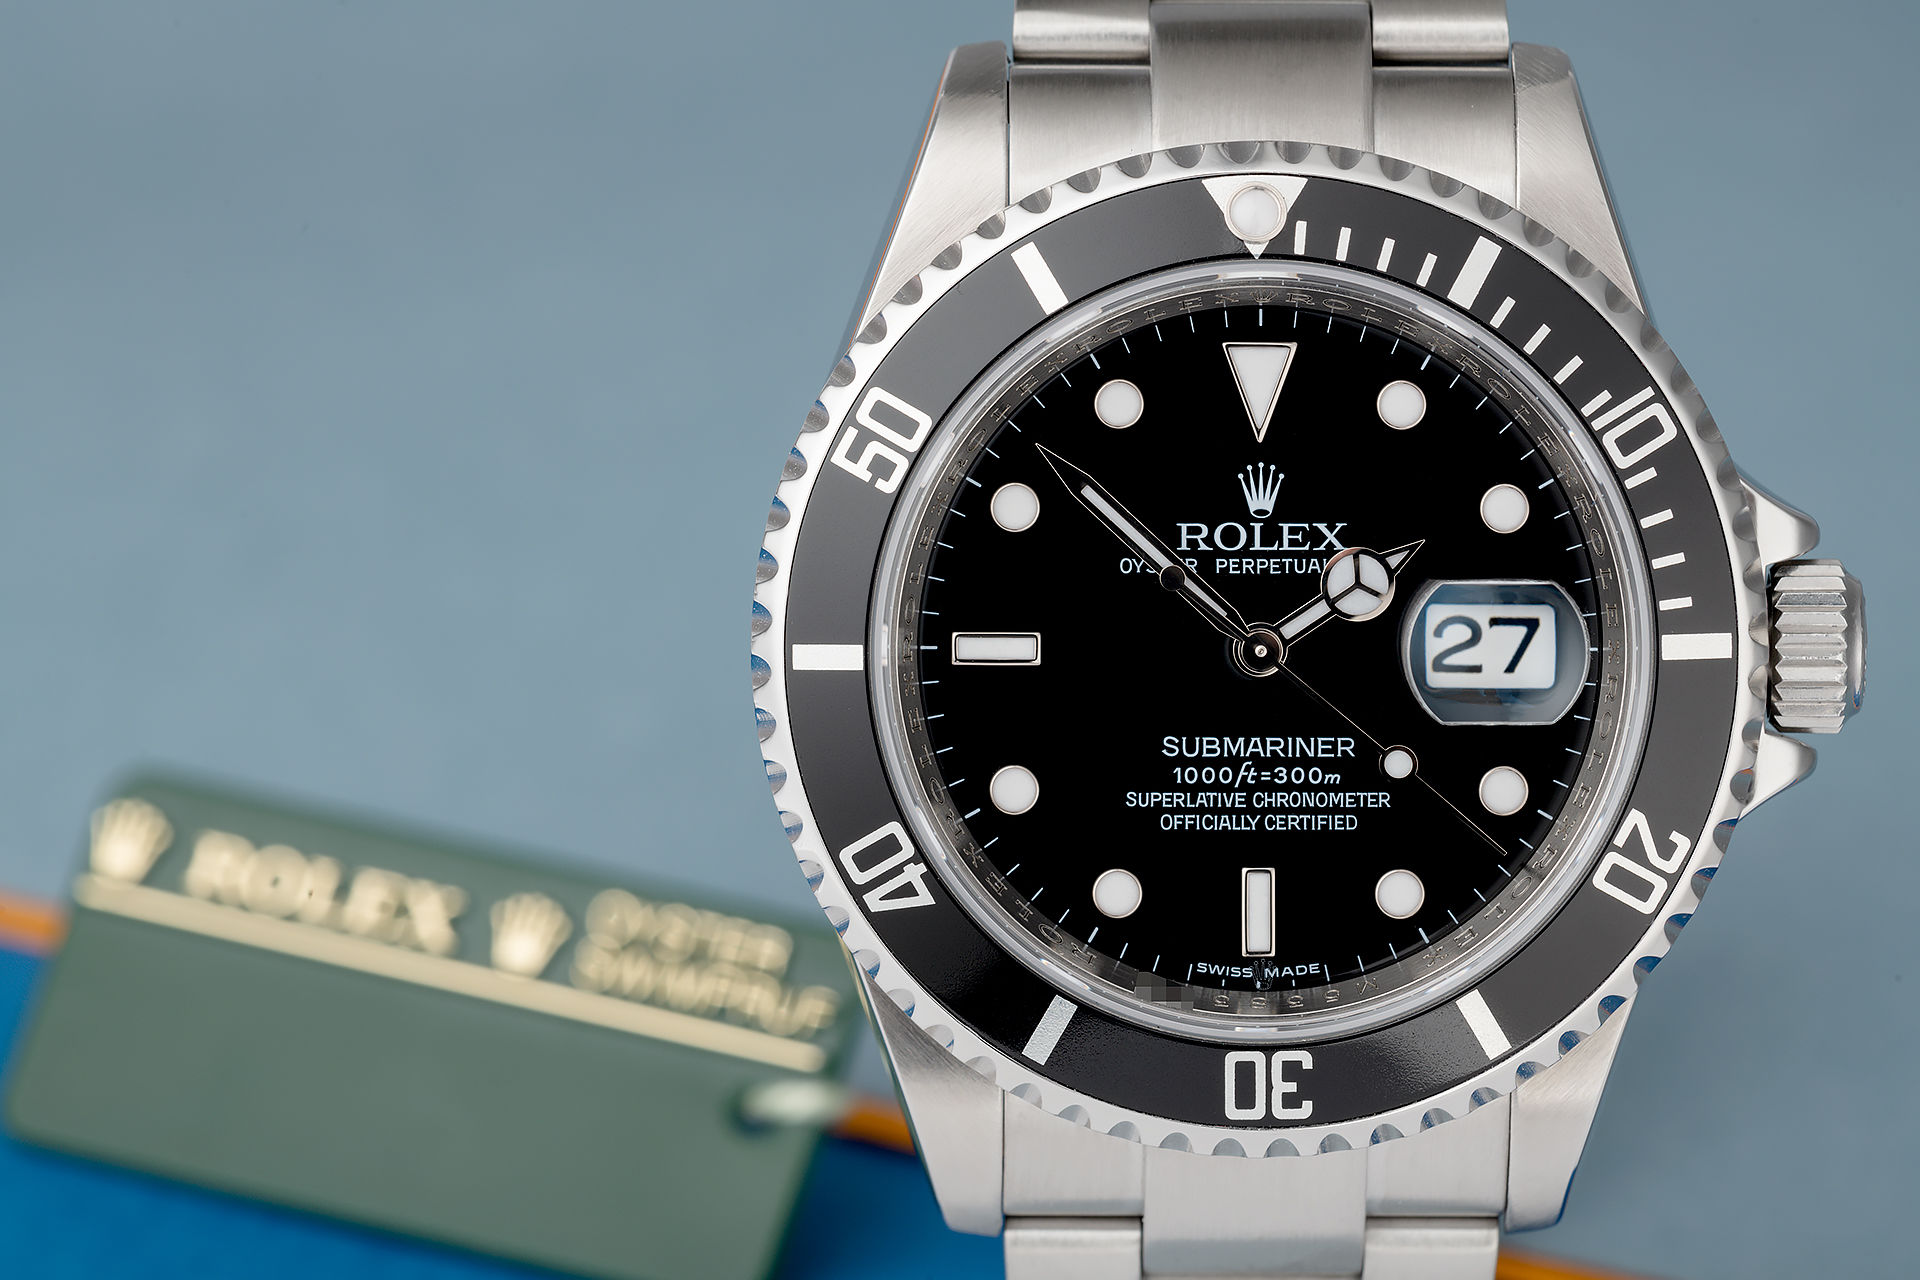 ref 16610 | Complete Set 'Harrods' | Rolex Submariner Date